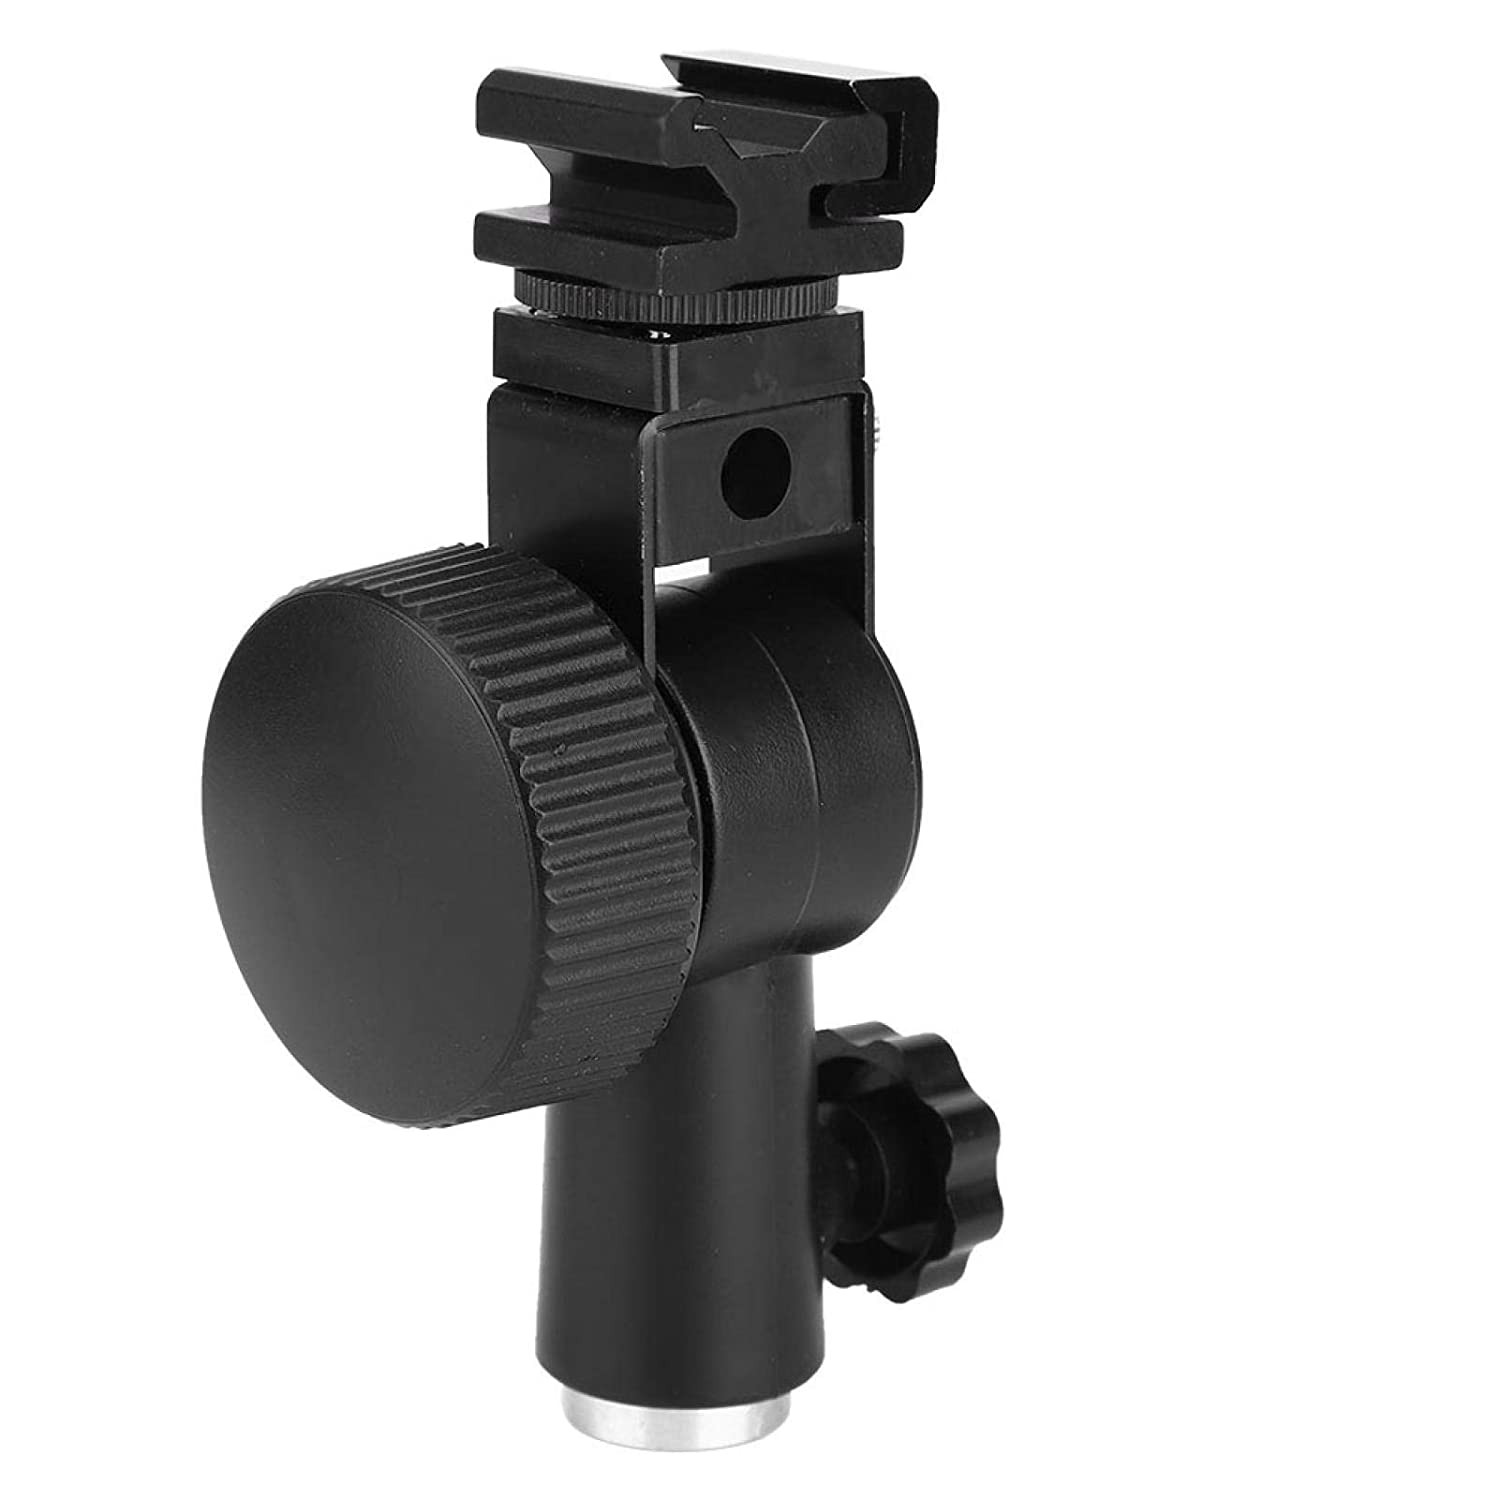 Animer and price revision Flash Lamp Mount Portable Lightweight Ad Shoe Hot Complete Free Shipping Bracket